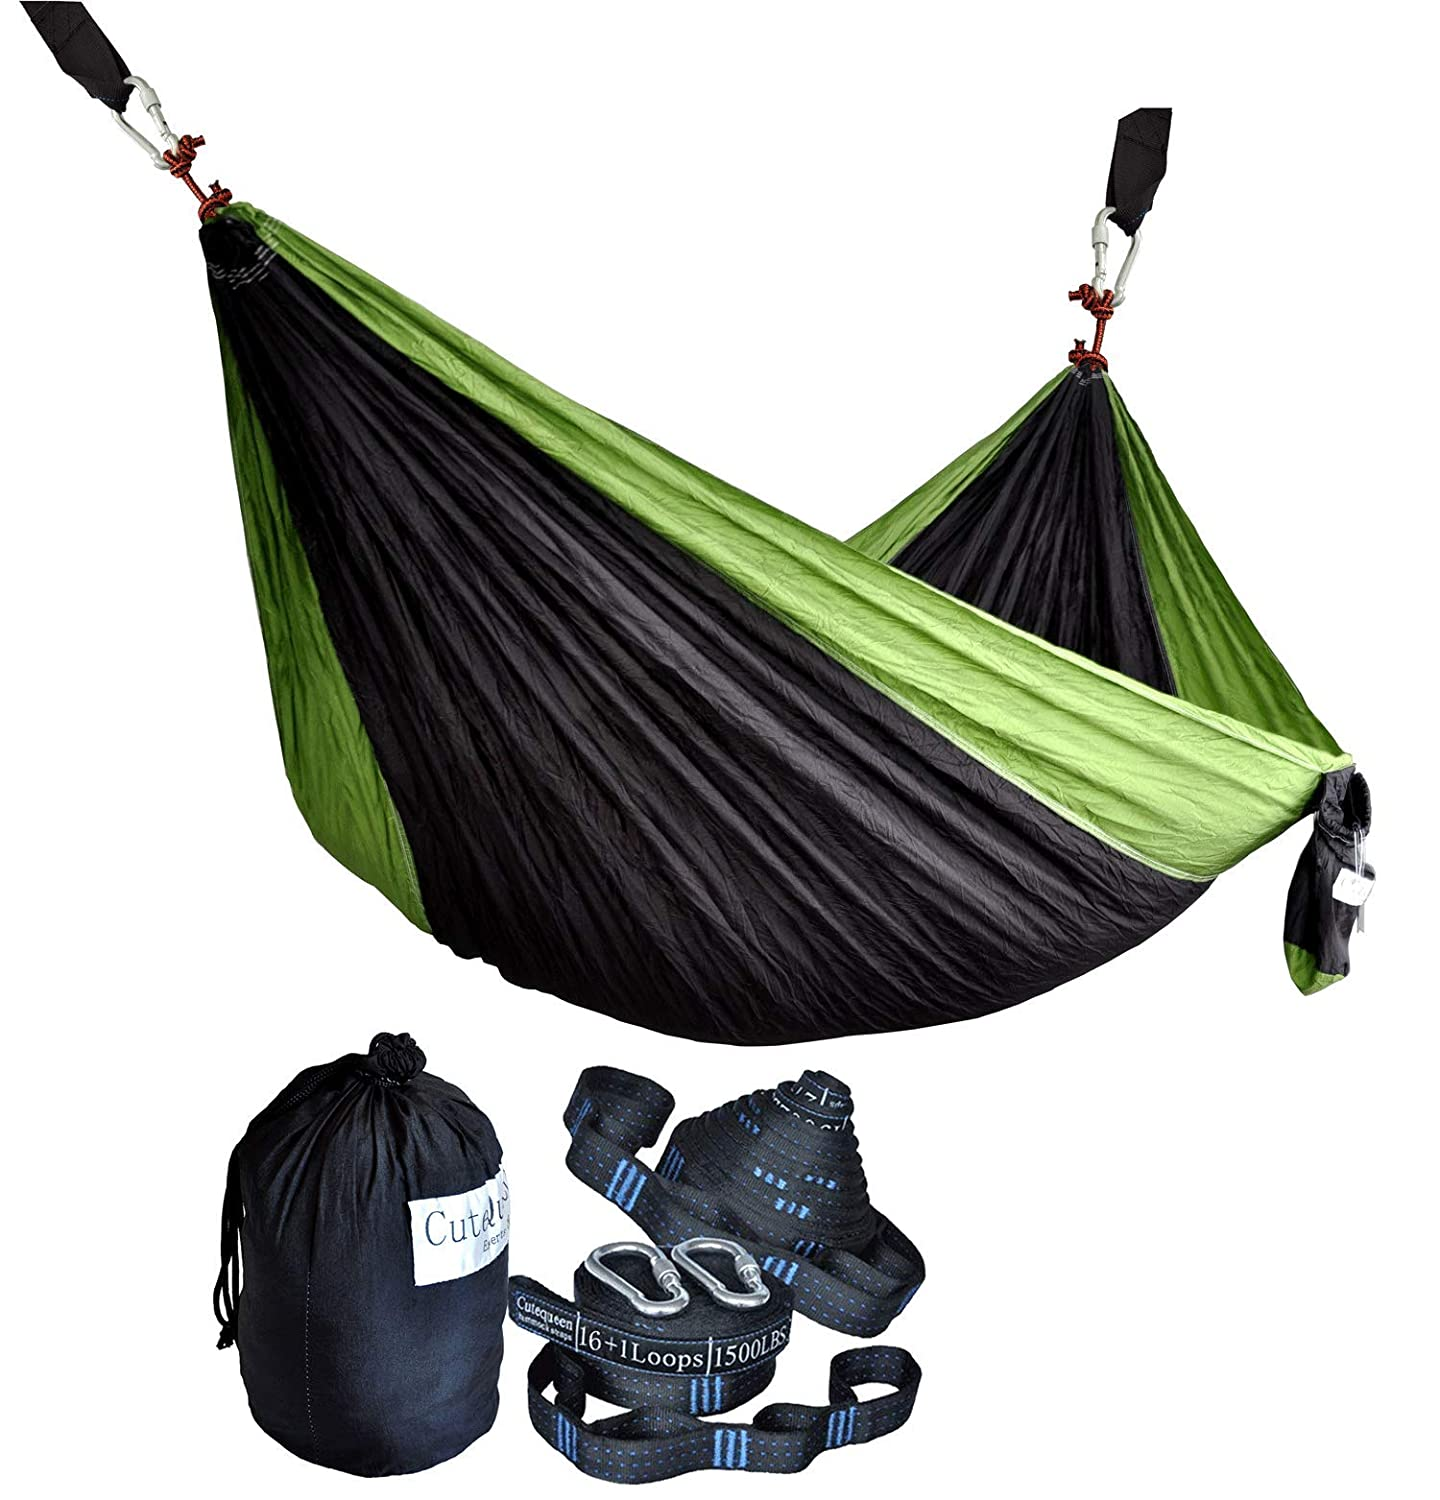 Cutequeen Double Nest Nylon Fabric Hammock with Multi Loops Tree Straps Black Fruit Green